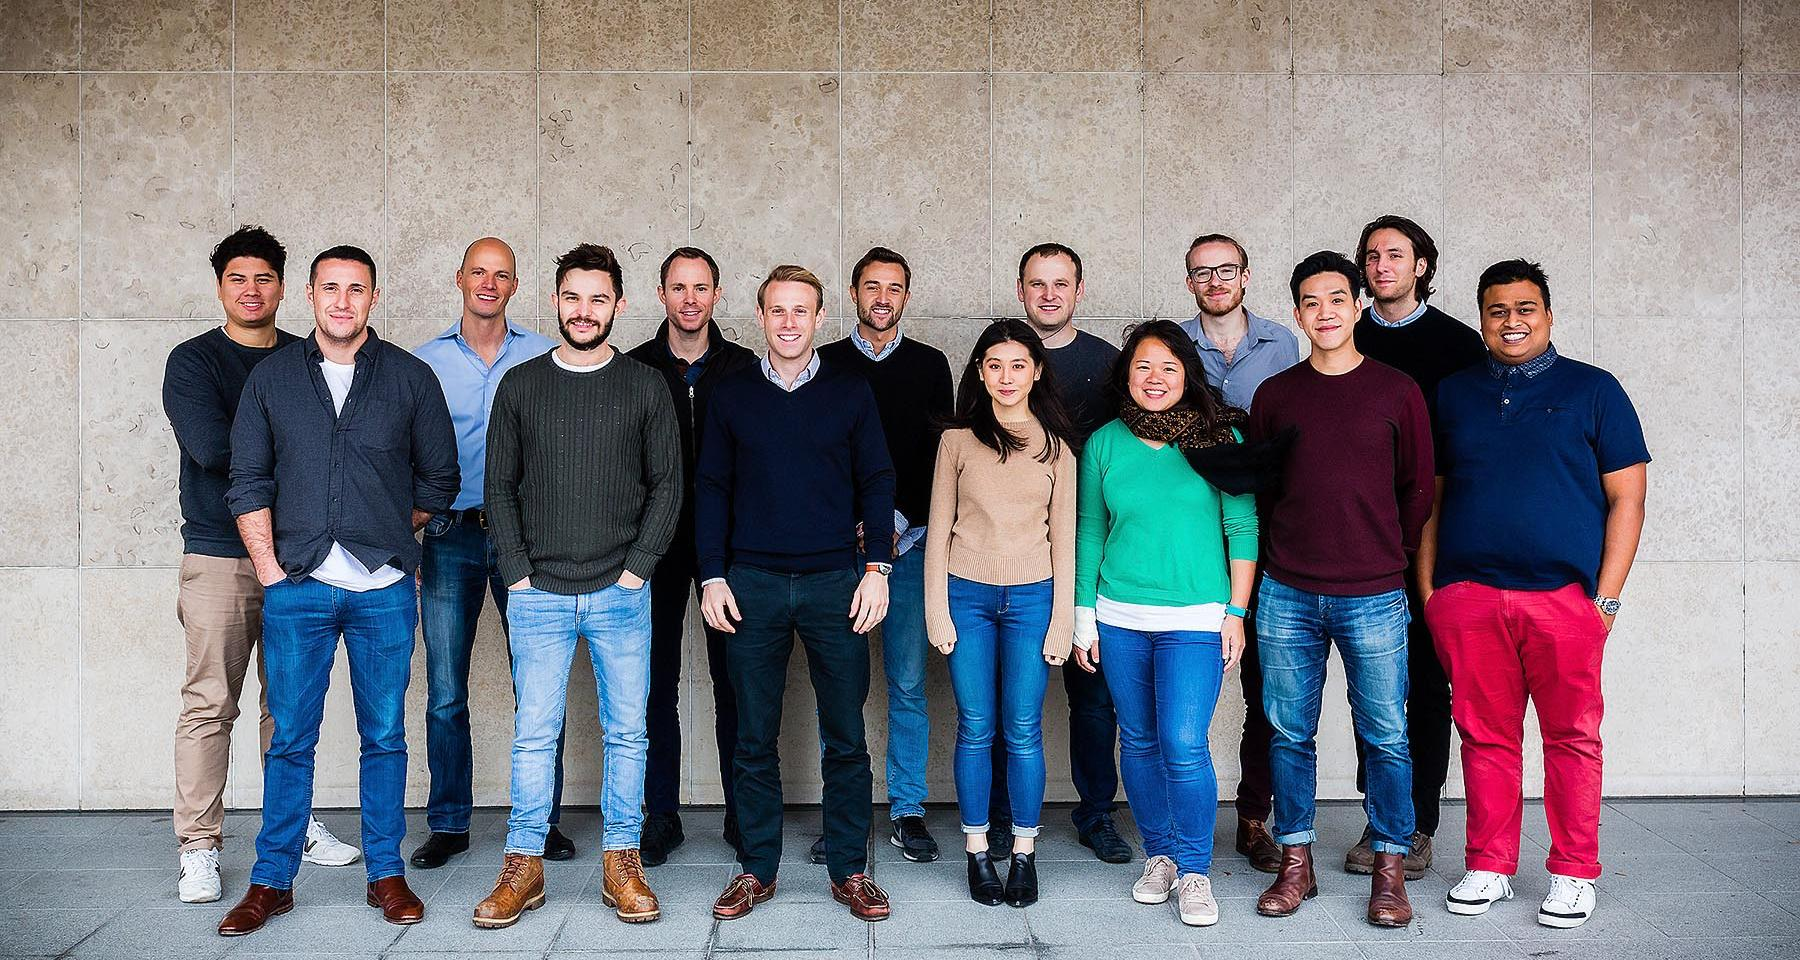 GuestReady secures £4.73 million Series A investment led by Impulse VC and Venture Souq